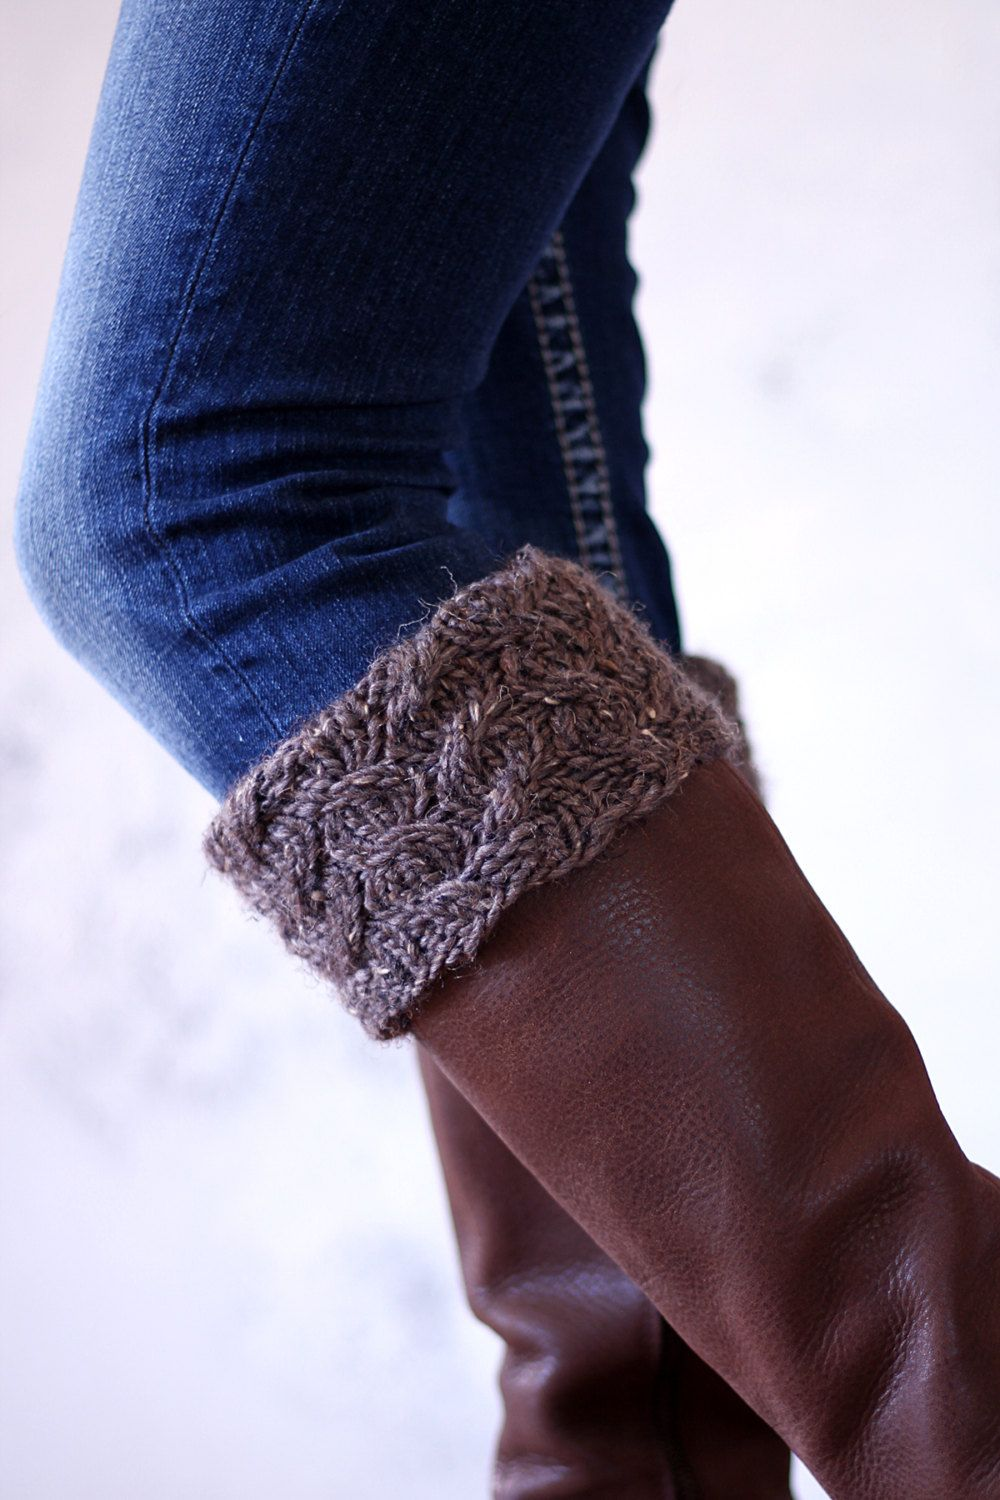 Be BRAVE - Women's Boot Cuff Cable Knitting Pattern - a ...